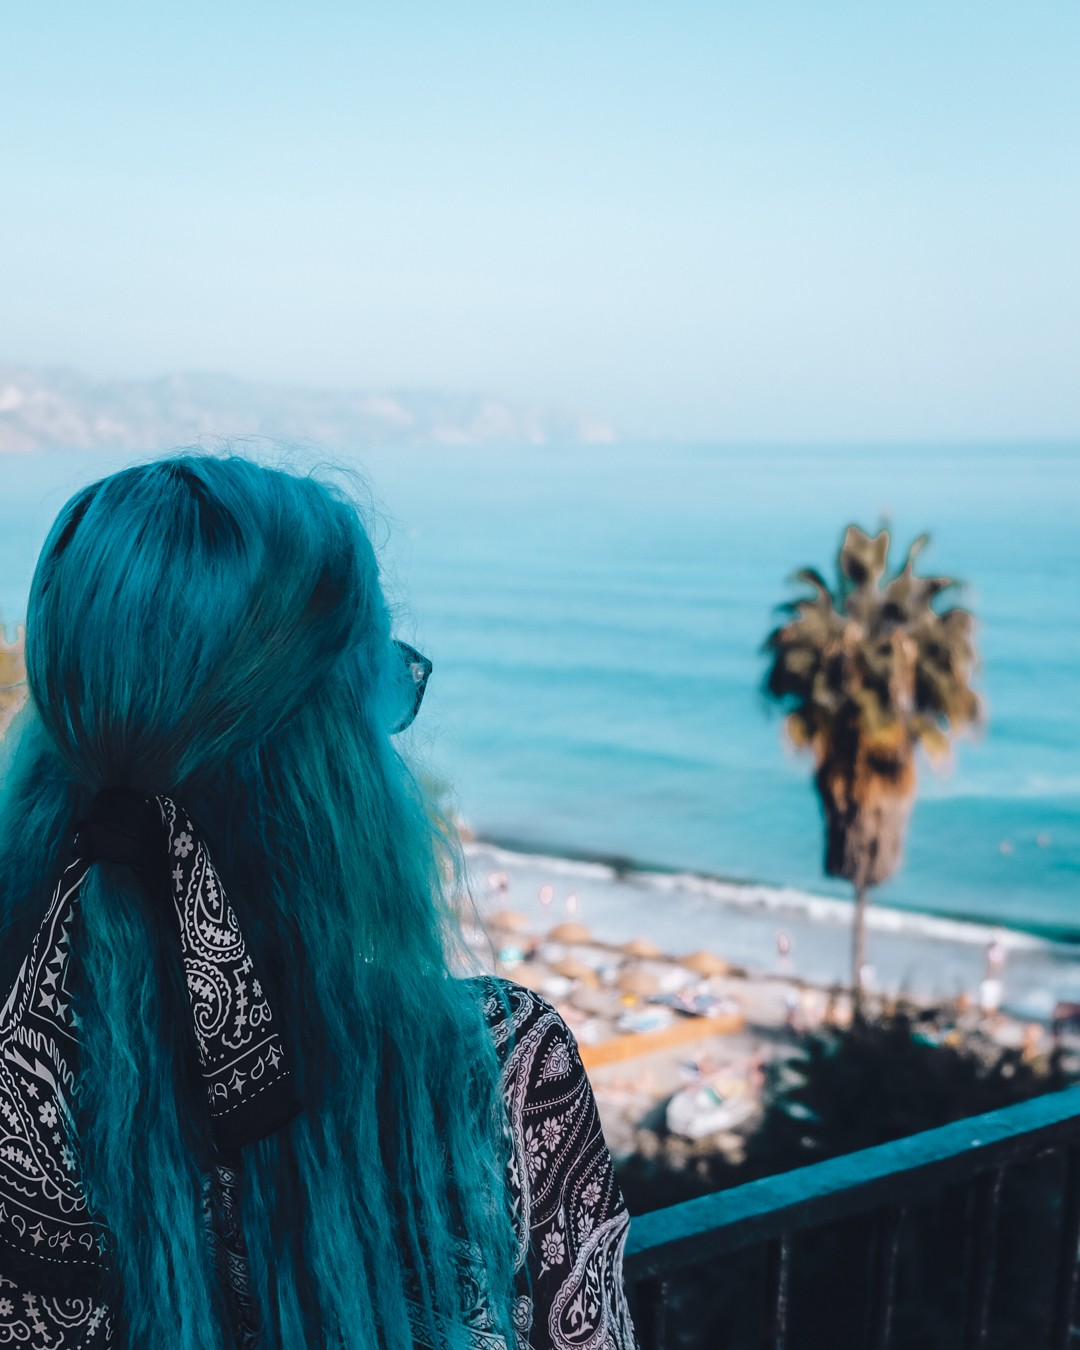 Stylish blue-haired girl looking at sea, a palm nearby and a beautiful seashore with sky-blue water.